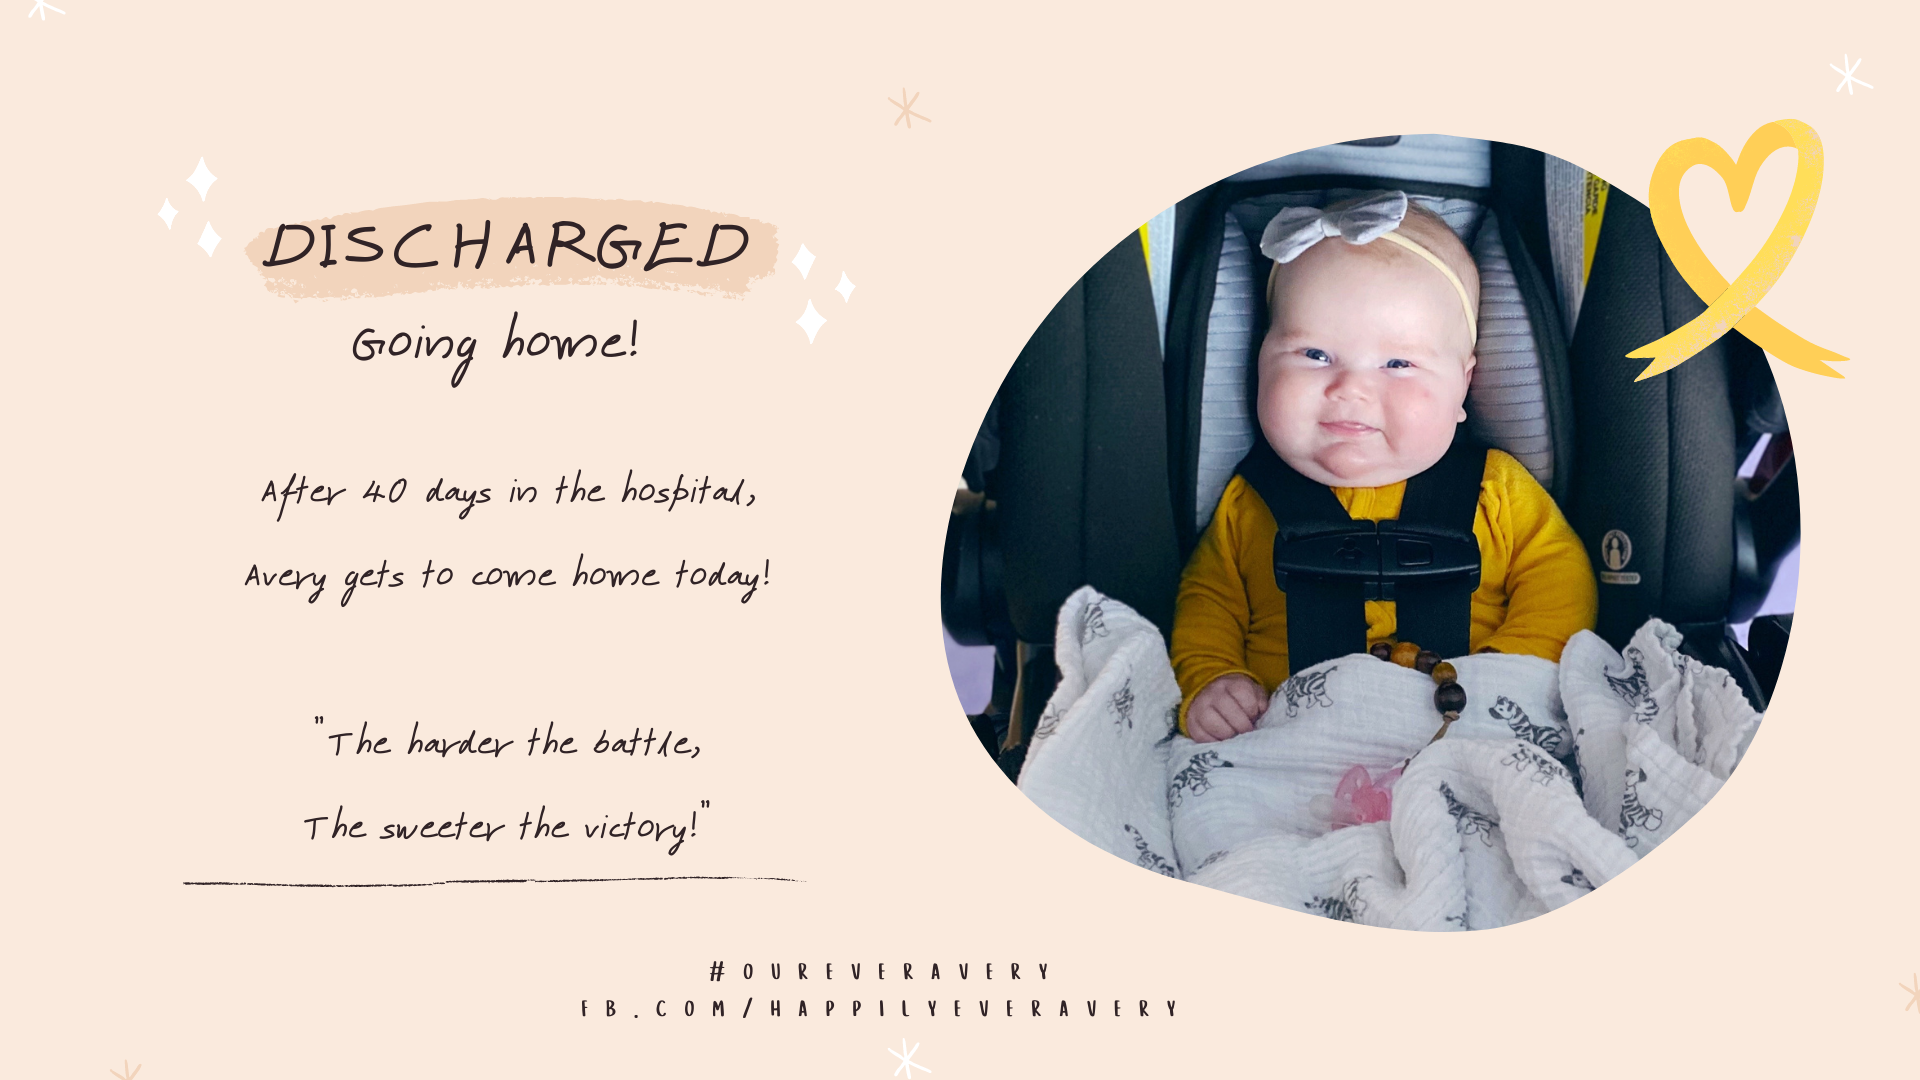 Happily Ever Avery // Look Who Got Discharged!